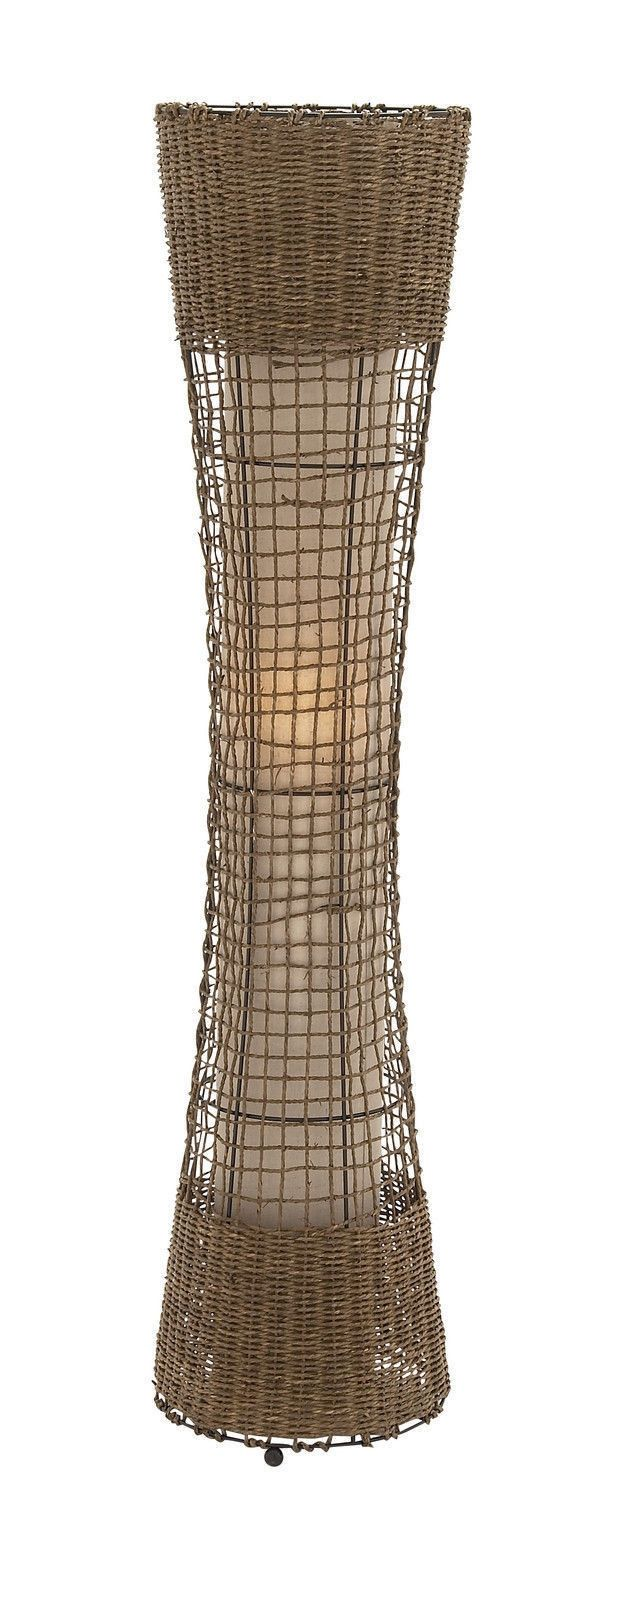 best floor lamps images on pinterest  floor lamps table lamp  - modern  tall standing metal woven rattan floor lamp contemporary natural